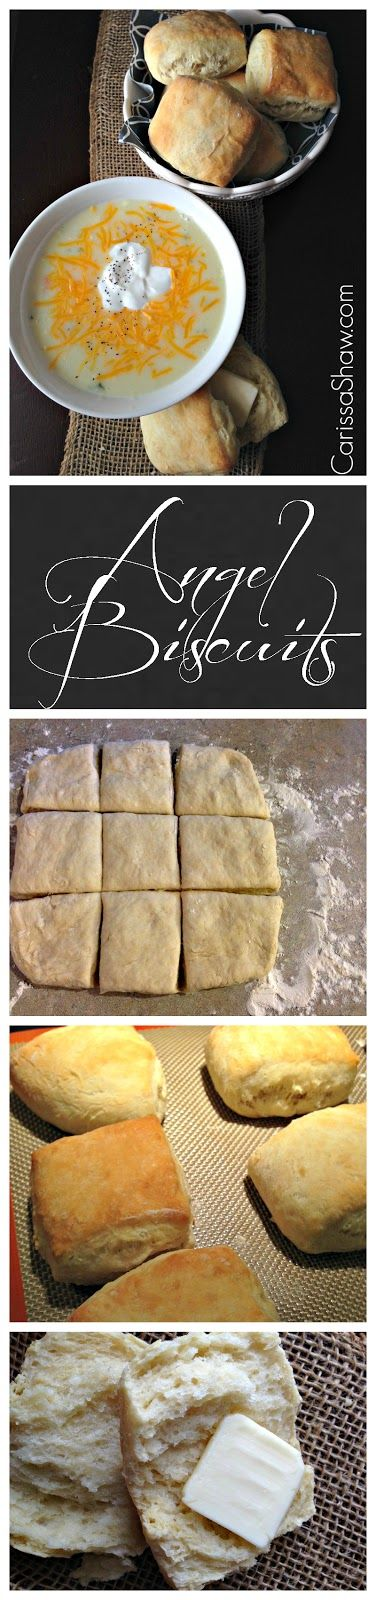 Angel Biscuits | You'll fall in love with these light and fluffy yeast raised biscuits. So easy to make and the perfect compliment to a delicious bowl of soup!